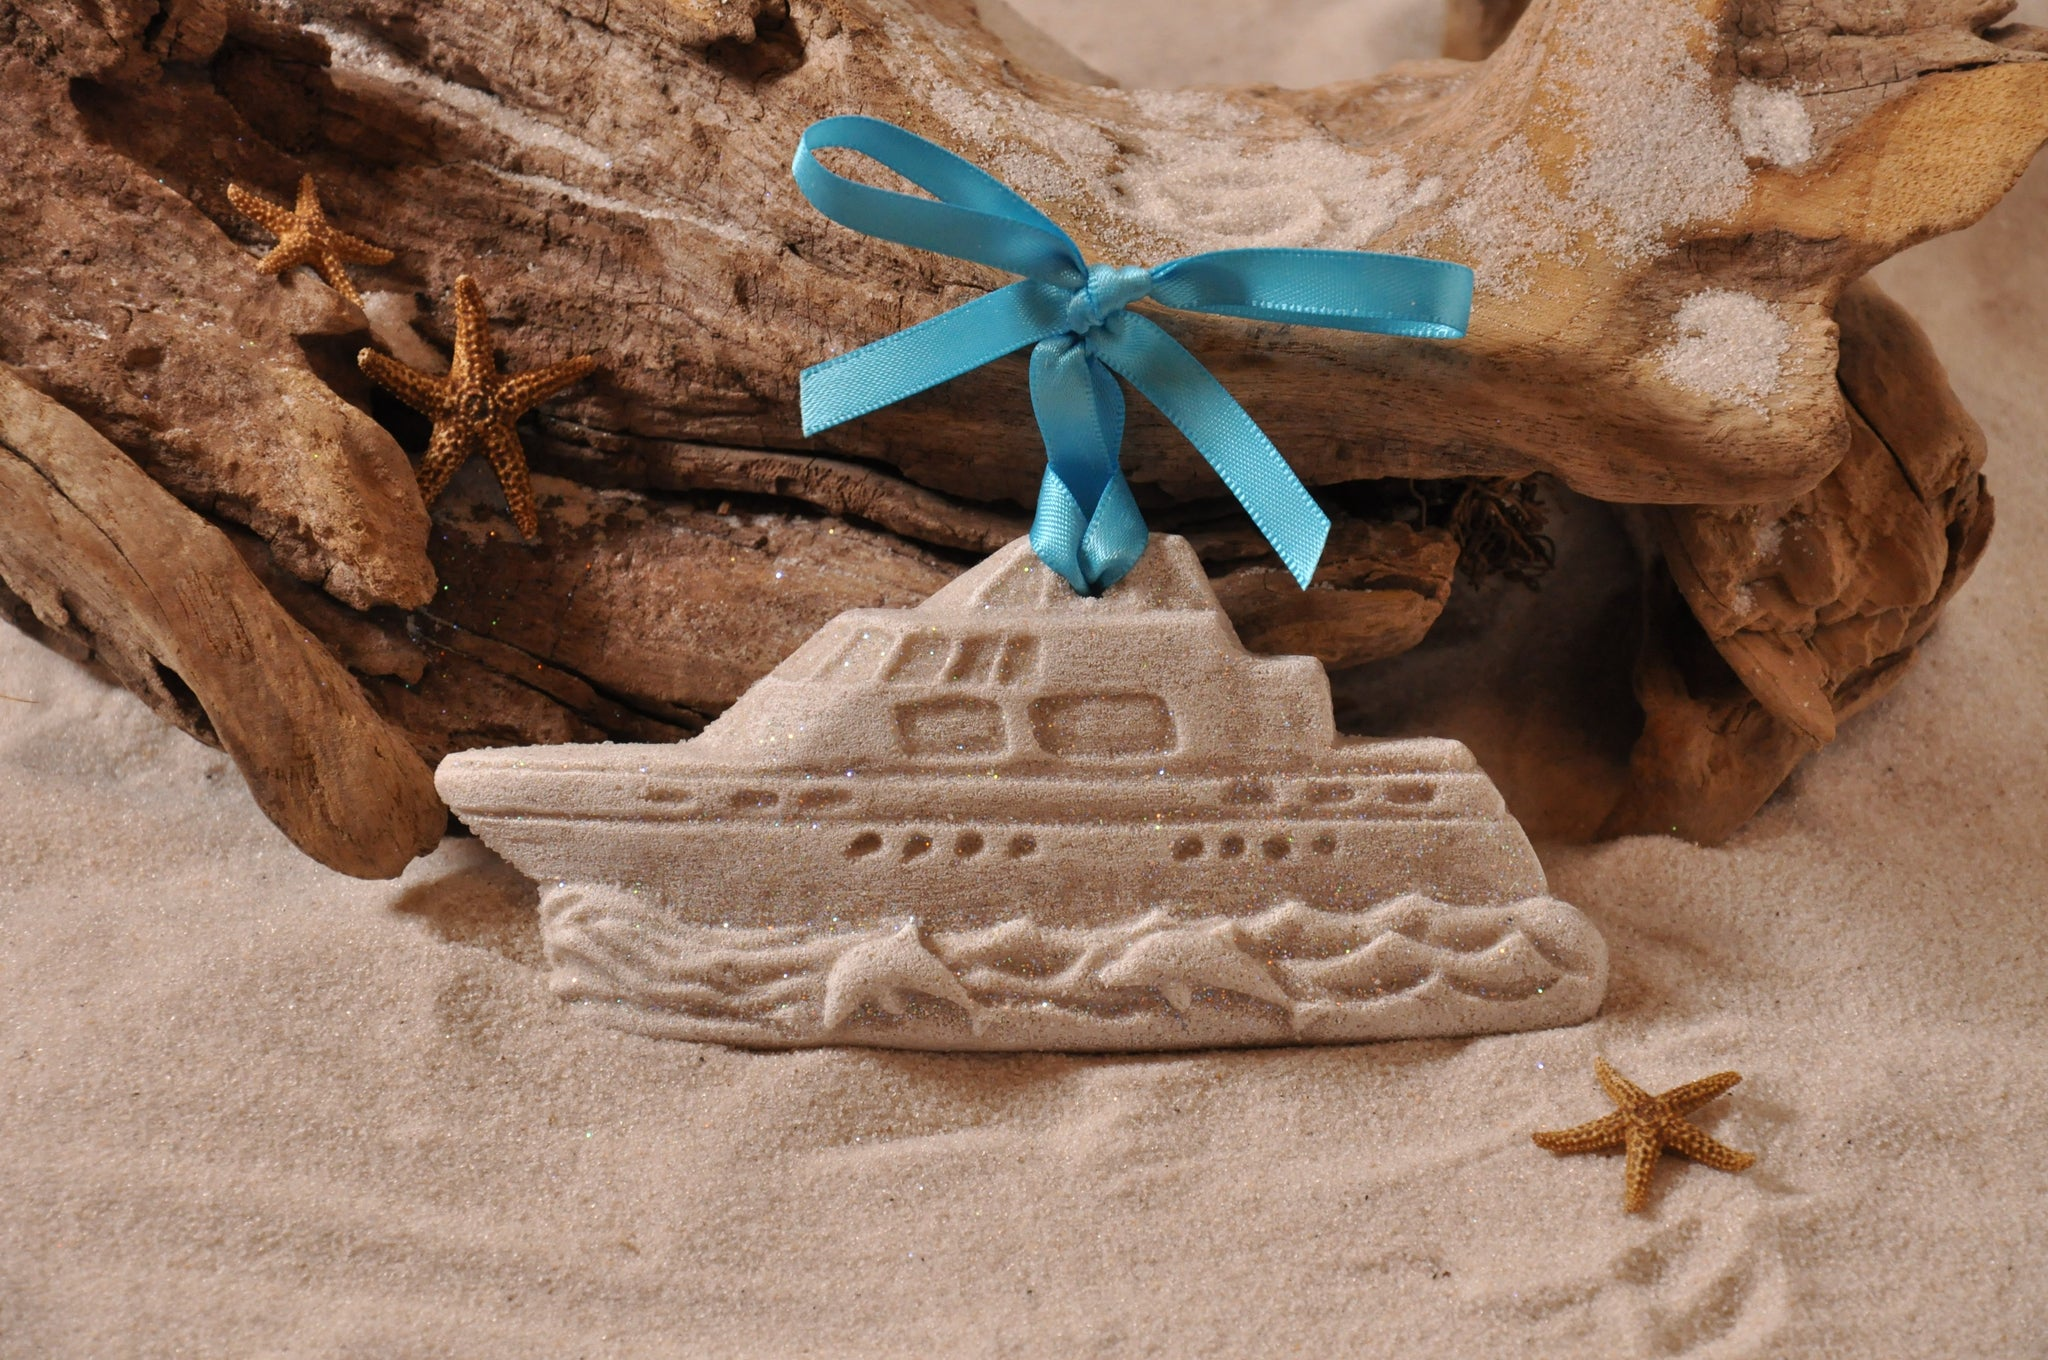 SAND ORNAMENT, CHRISTMAS TREE ORNAMENT, TROPICAL CHRISTMAS DECORATIONS, COASTAL ORNAMENT, SAND ORNAMENT, TROPICAL ORNAMENT, ARENOPHILE, SANTA, CHRISTMAS ORNAMENT, BOAT, YACHT, DOLPHIN